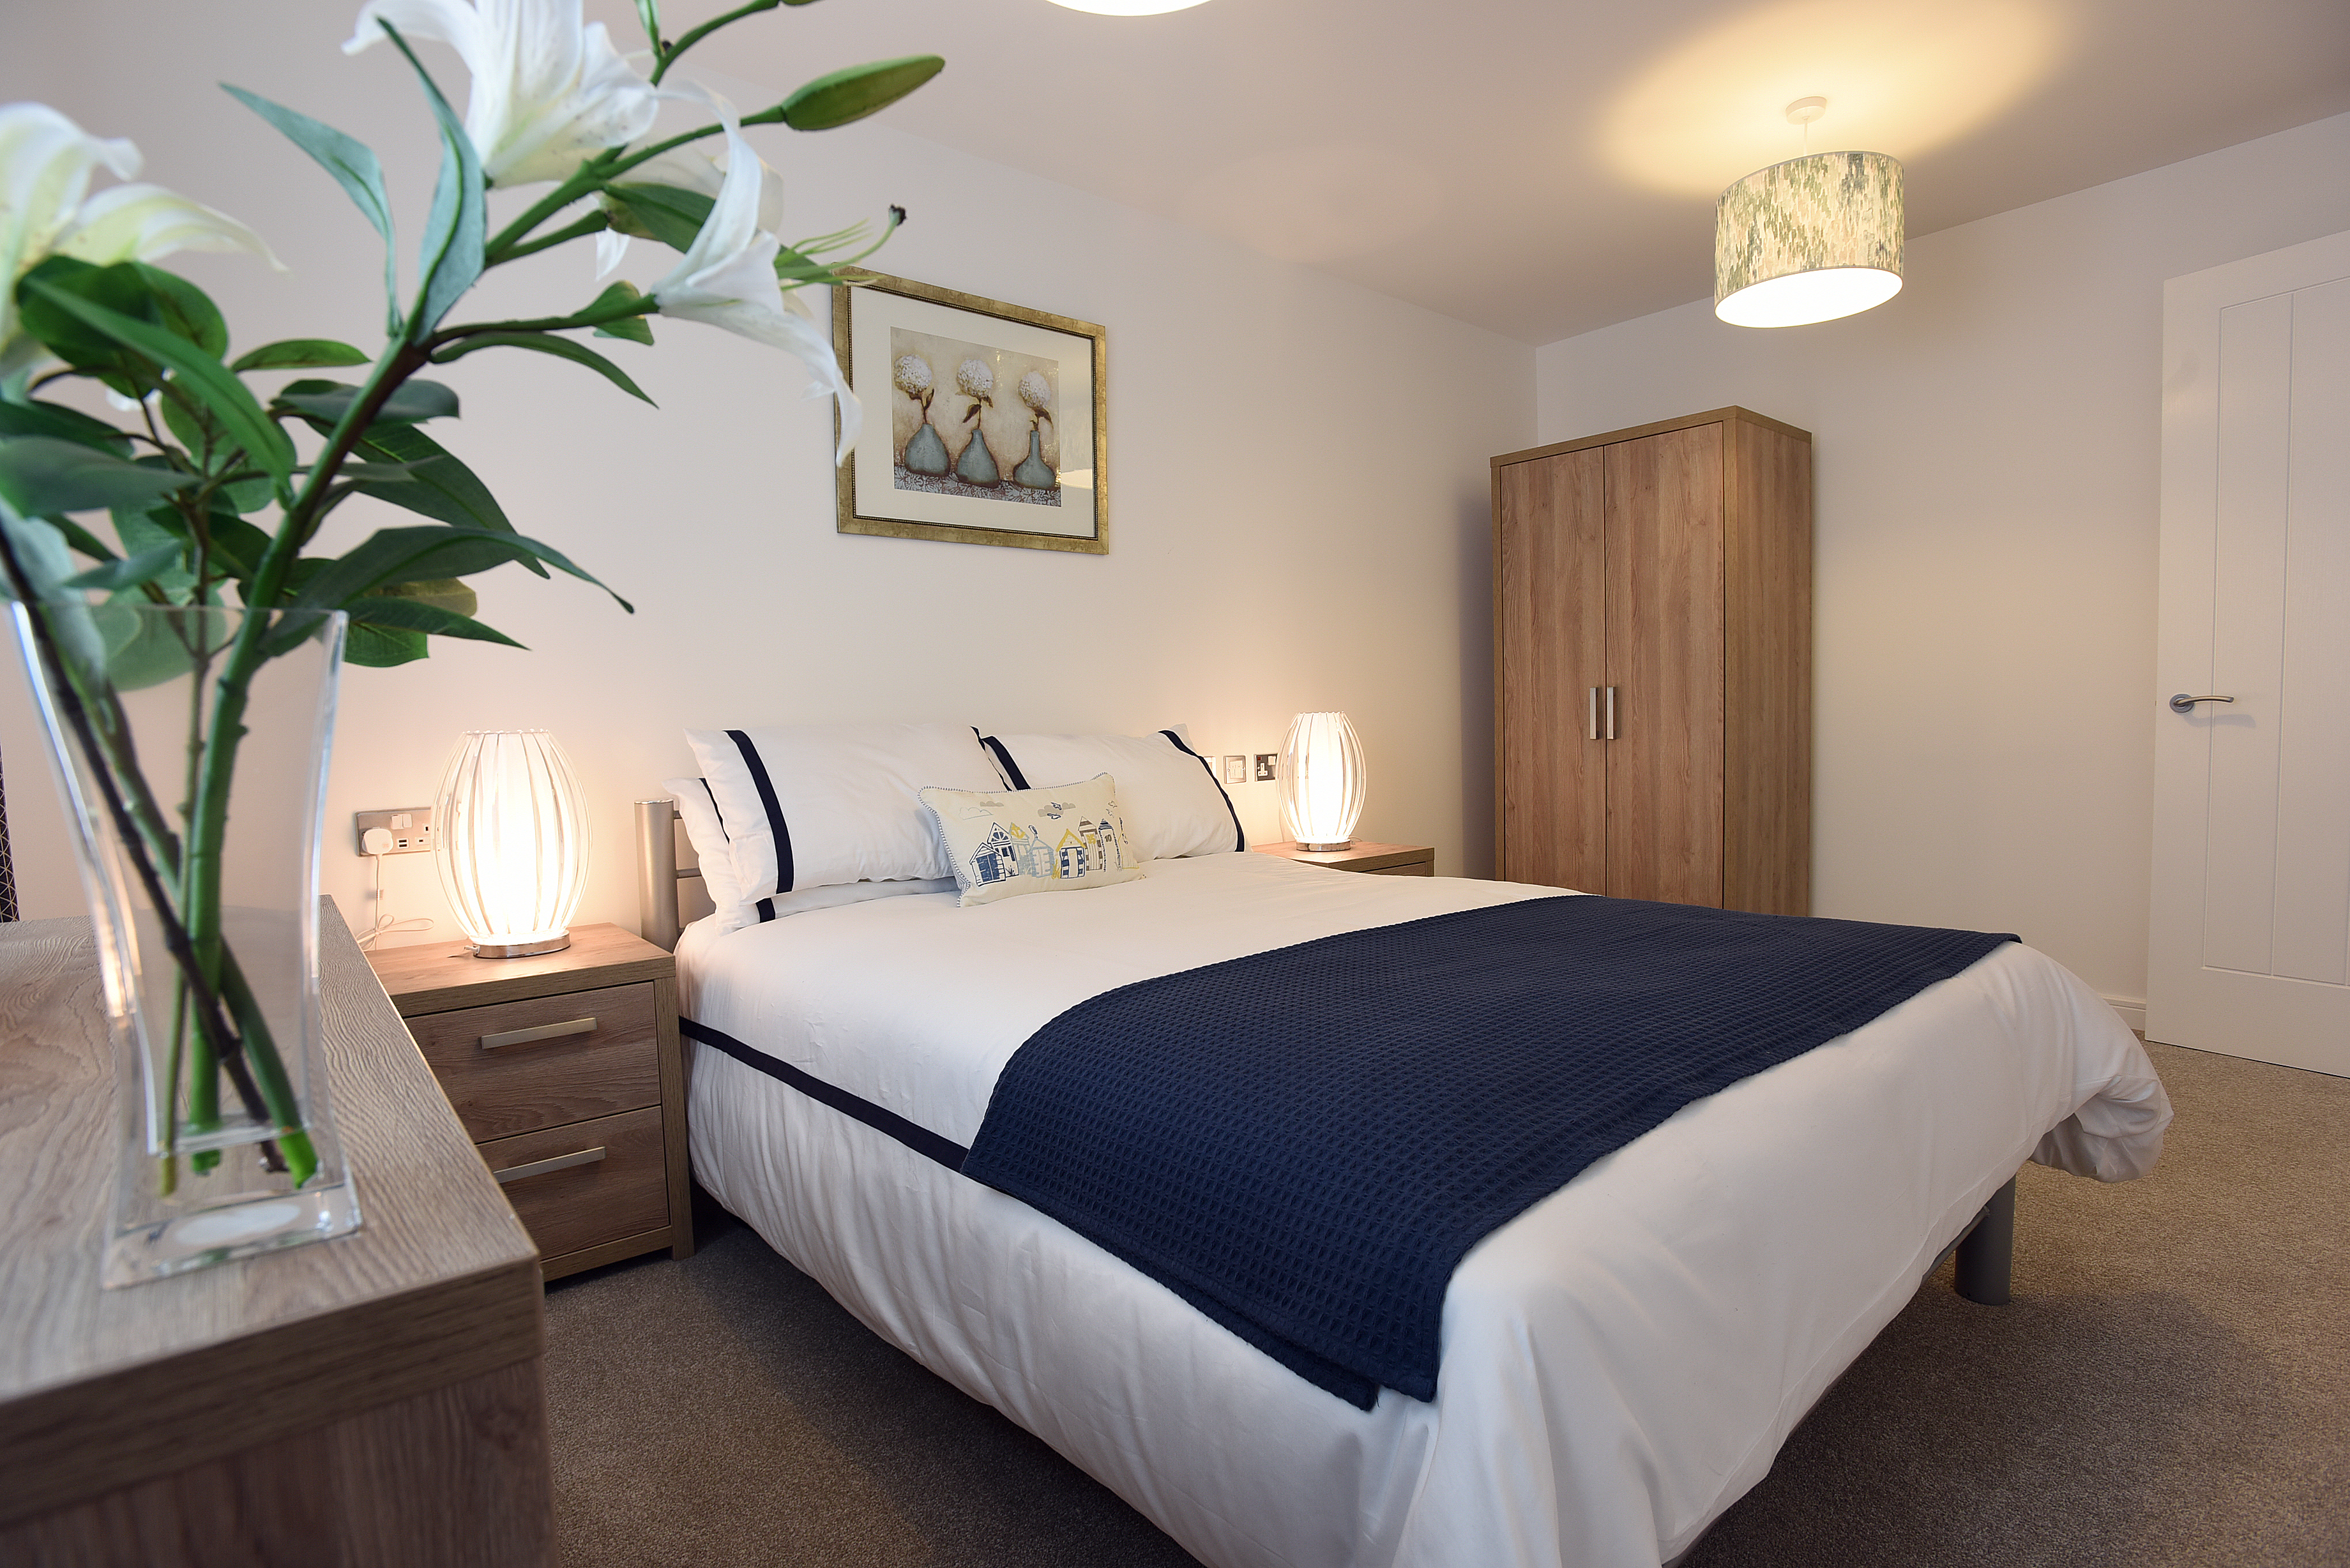 Homes at Stoke Gifford Retirement Village | Extracare org uk